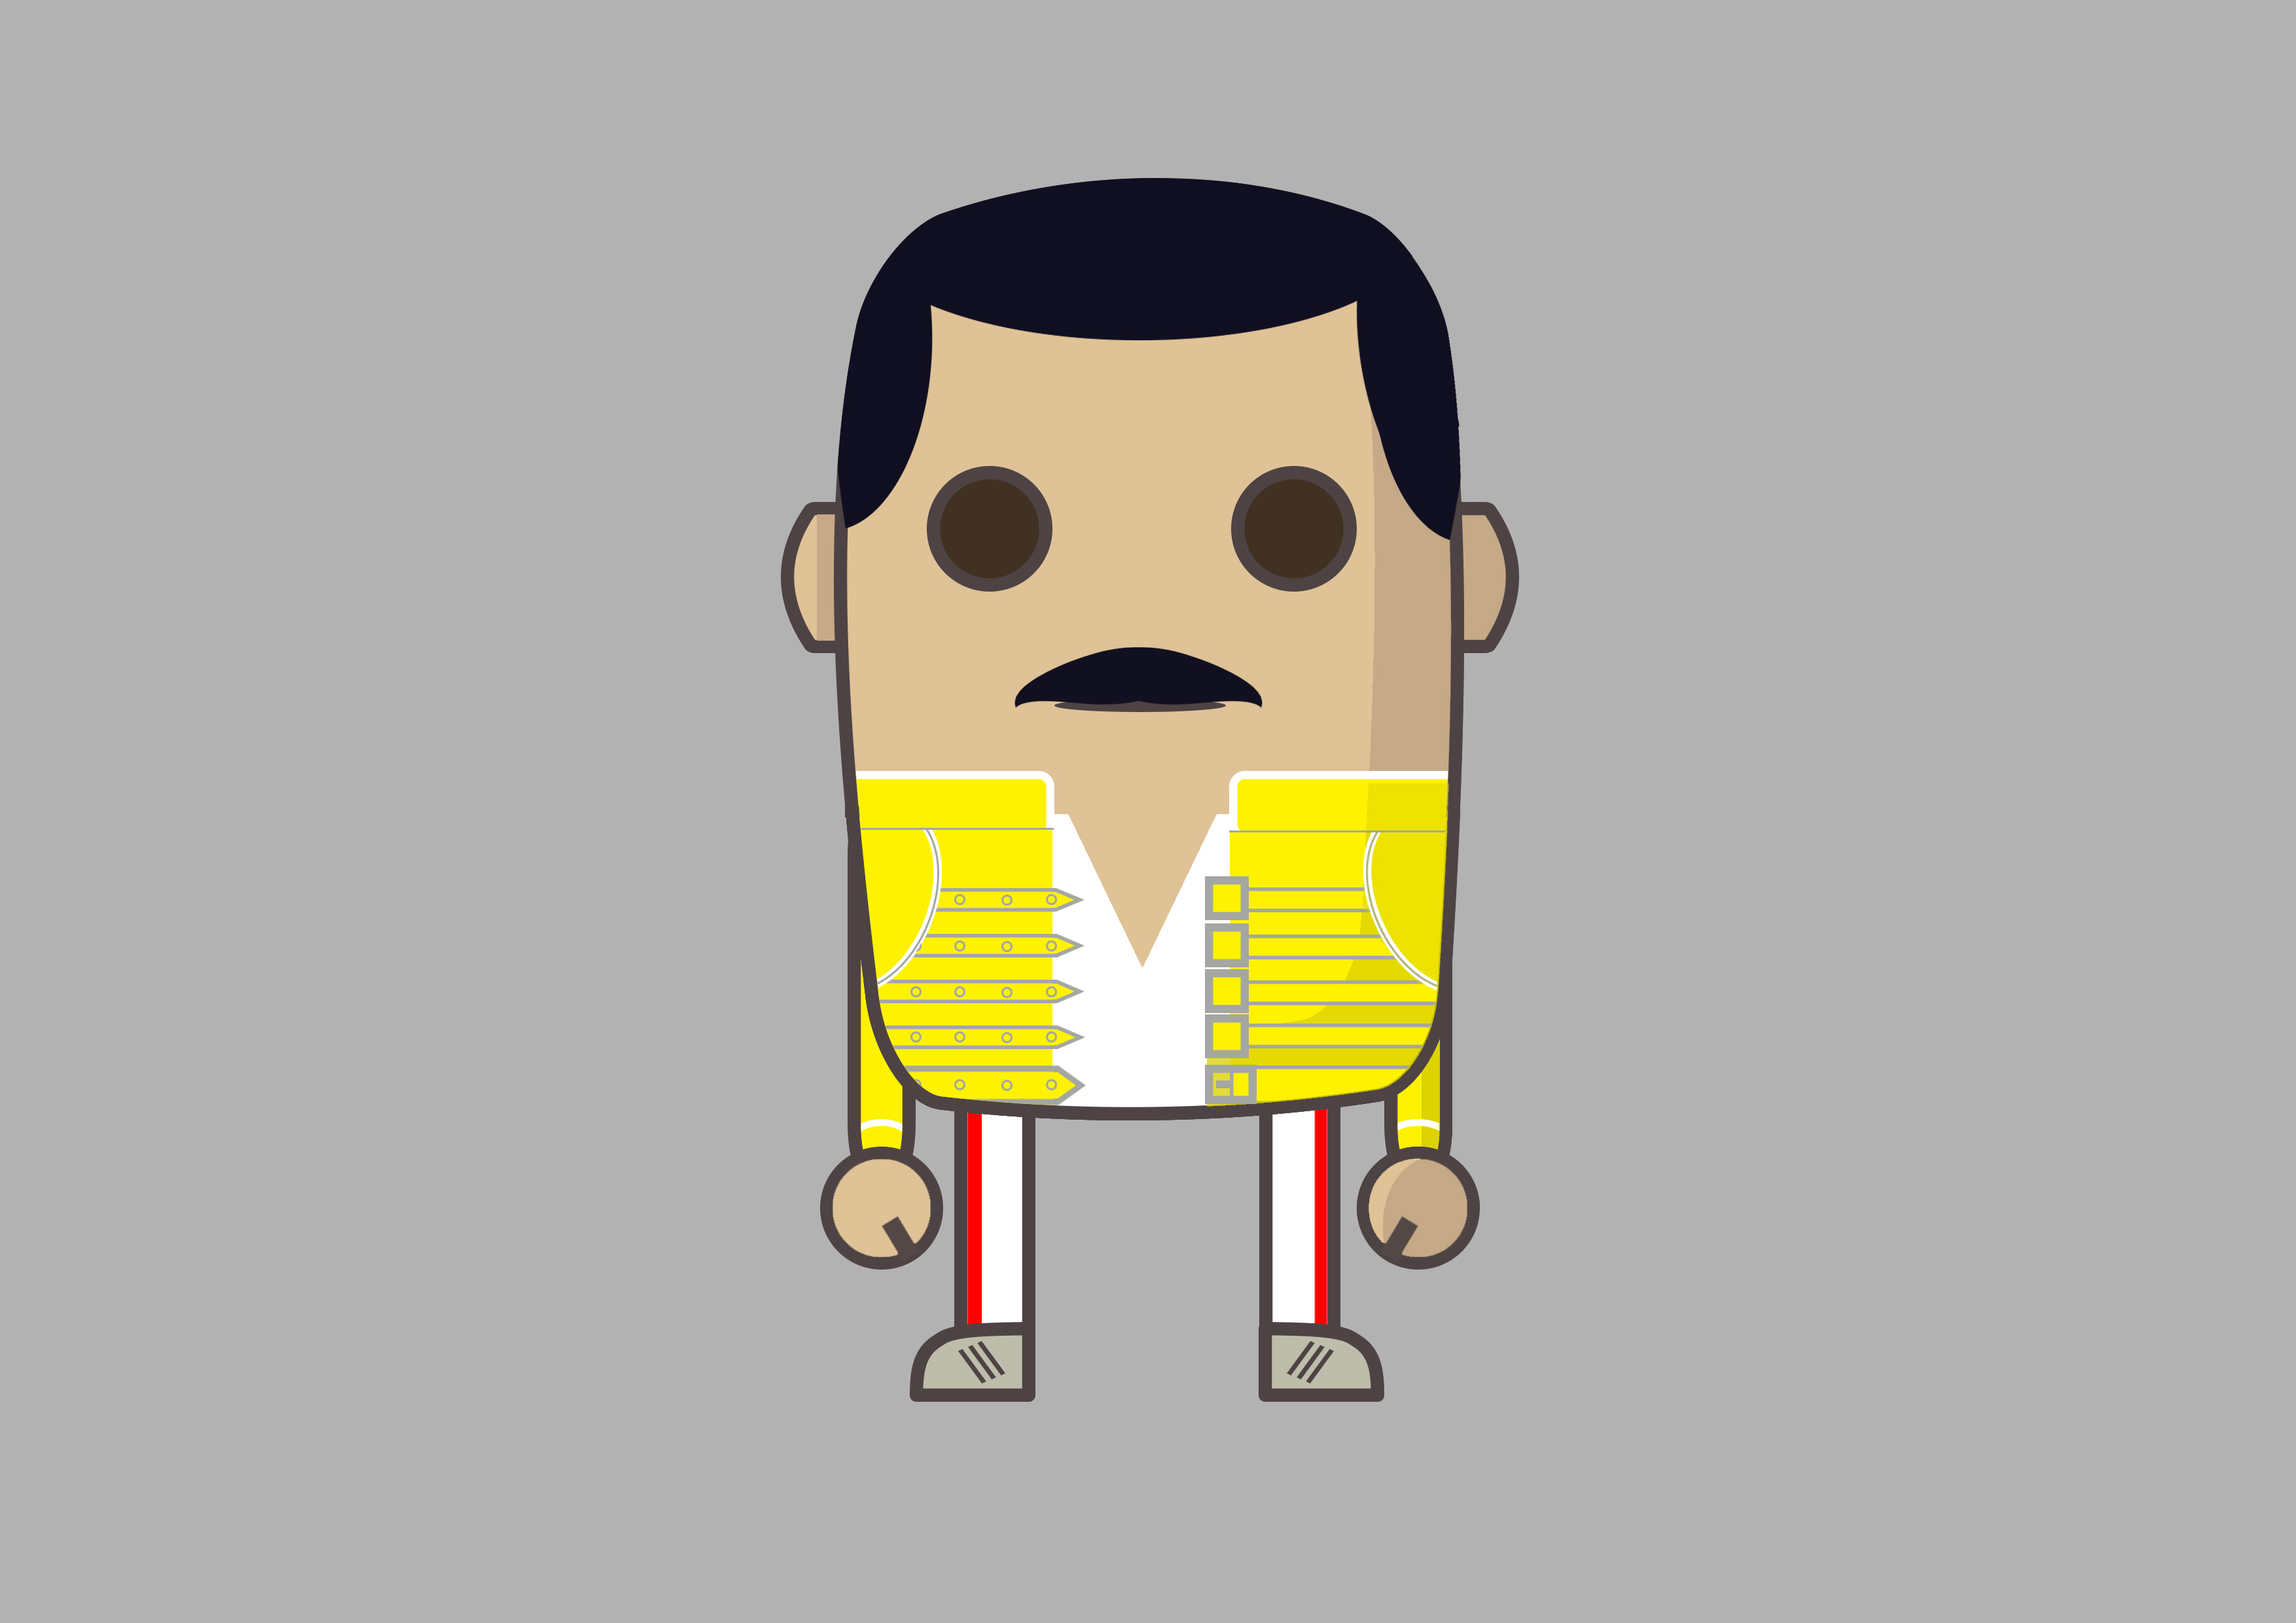 320x240 Mime Freddie Mercury Apple Iphone Ipod Touch Galaxy Ace Hd 4k Wallpapers Images Backgrounds Photos And Pictures